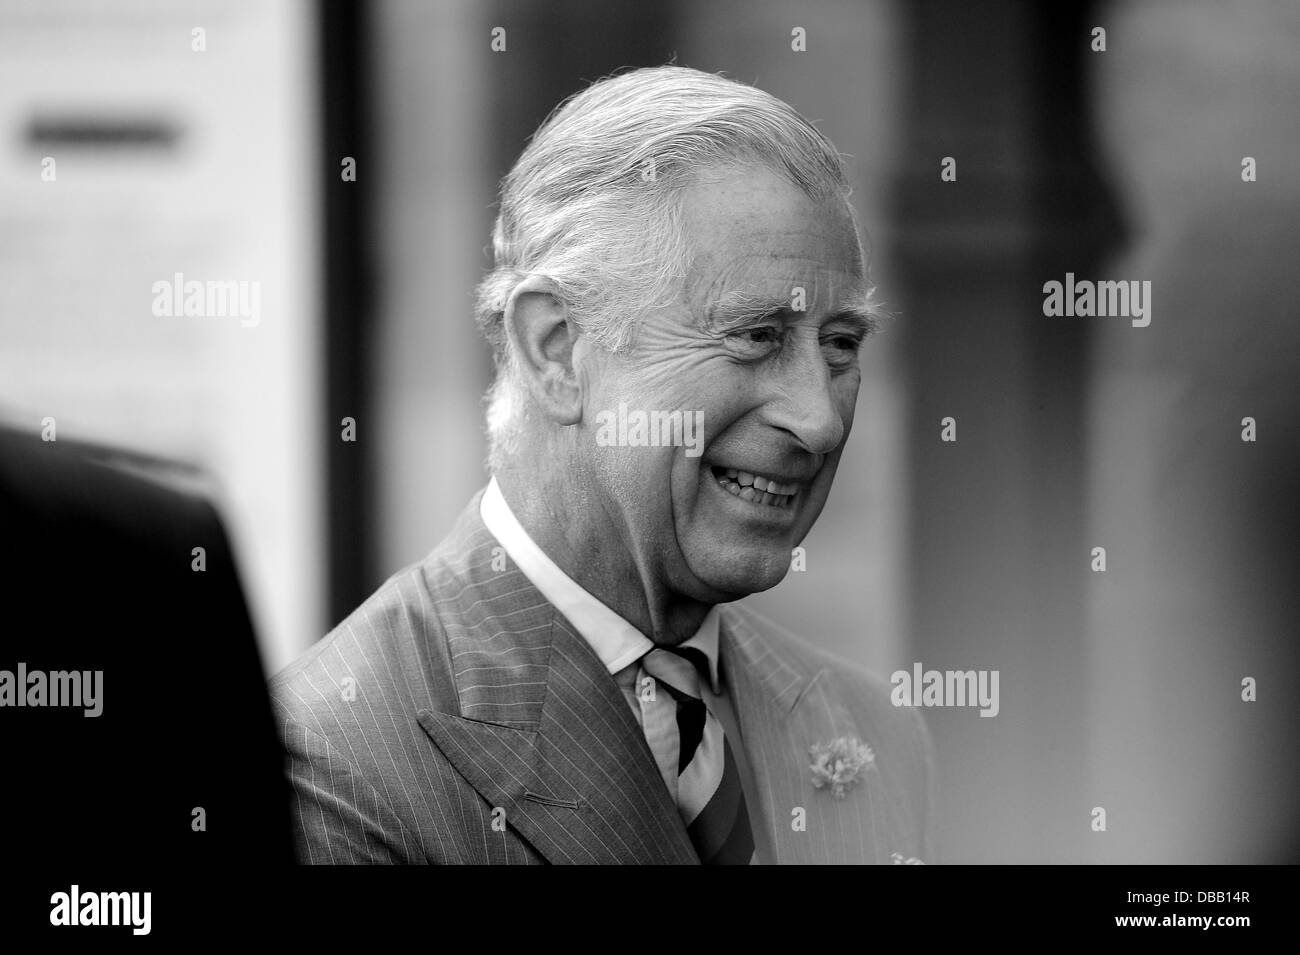 HRH The Prince of Wales, Prince Charles visits Kemble railway station in Gloucestershire to open a garden. - Stock Image